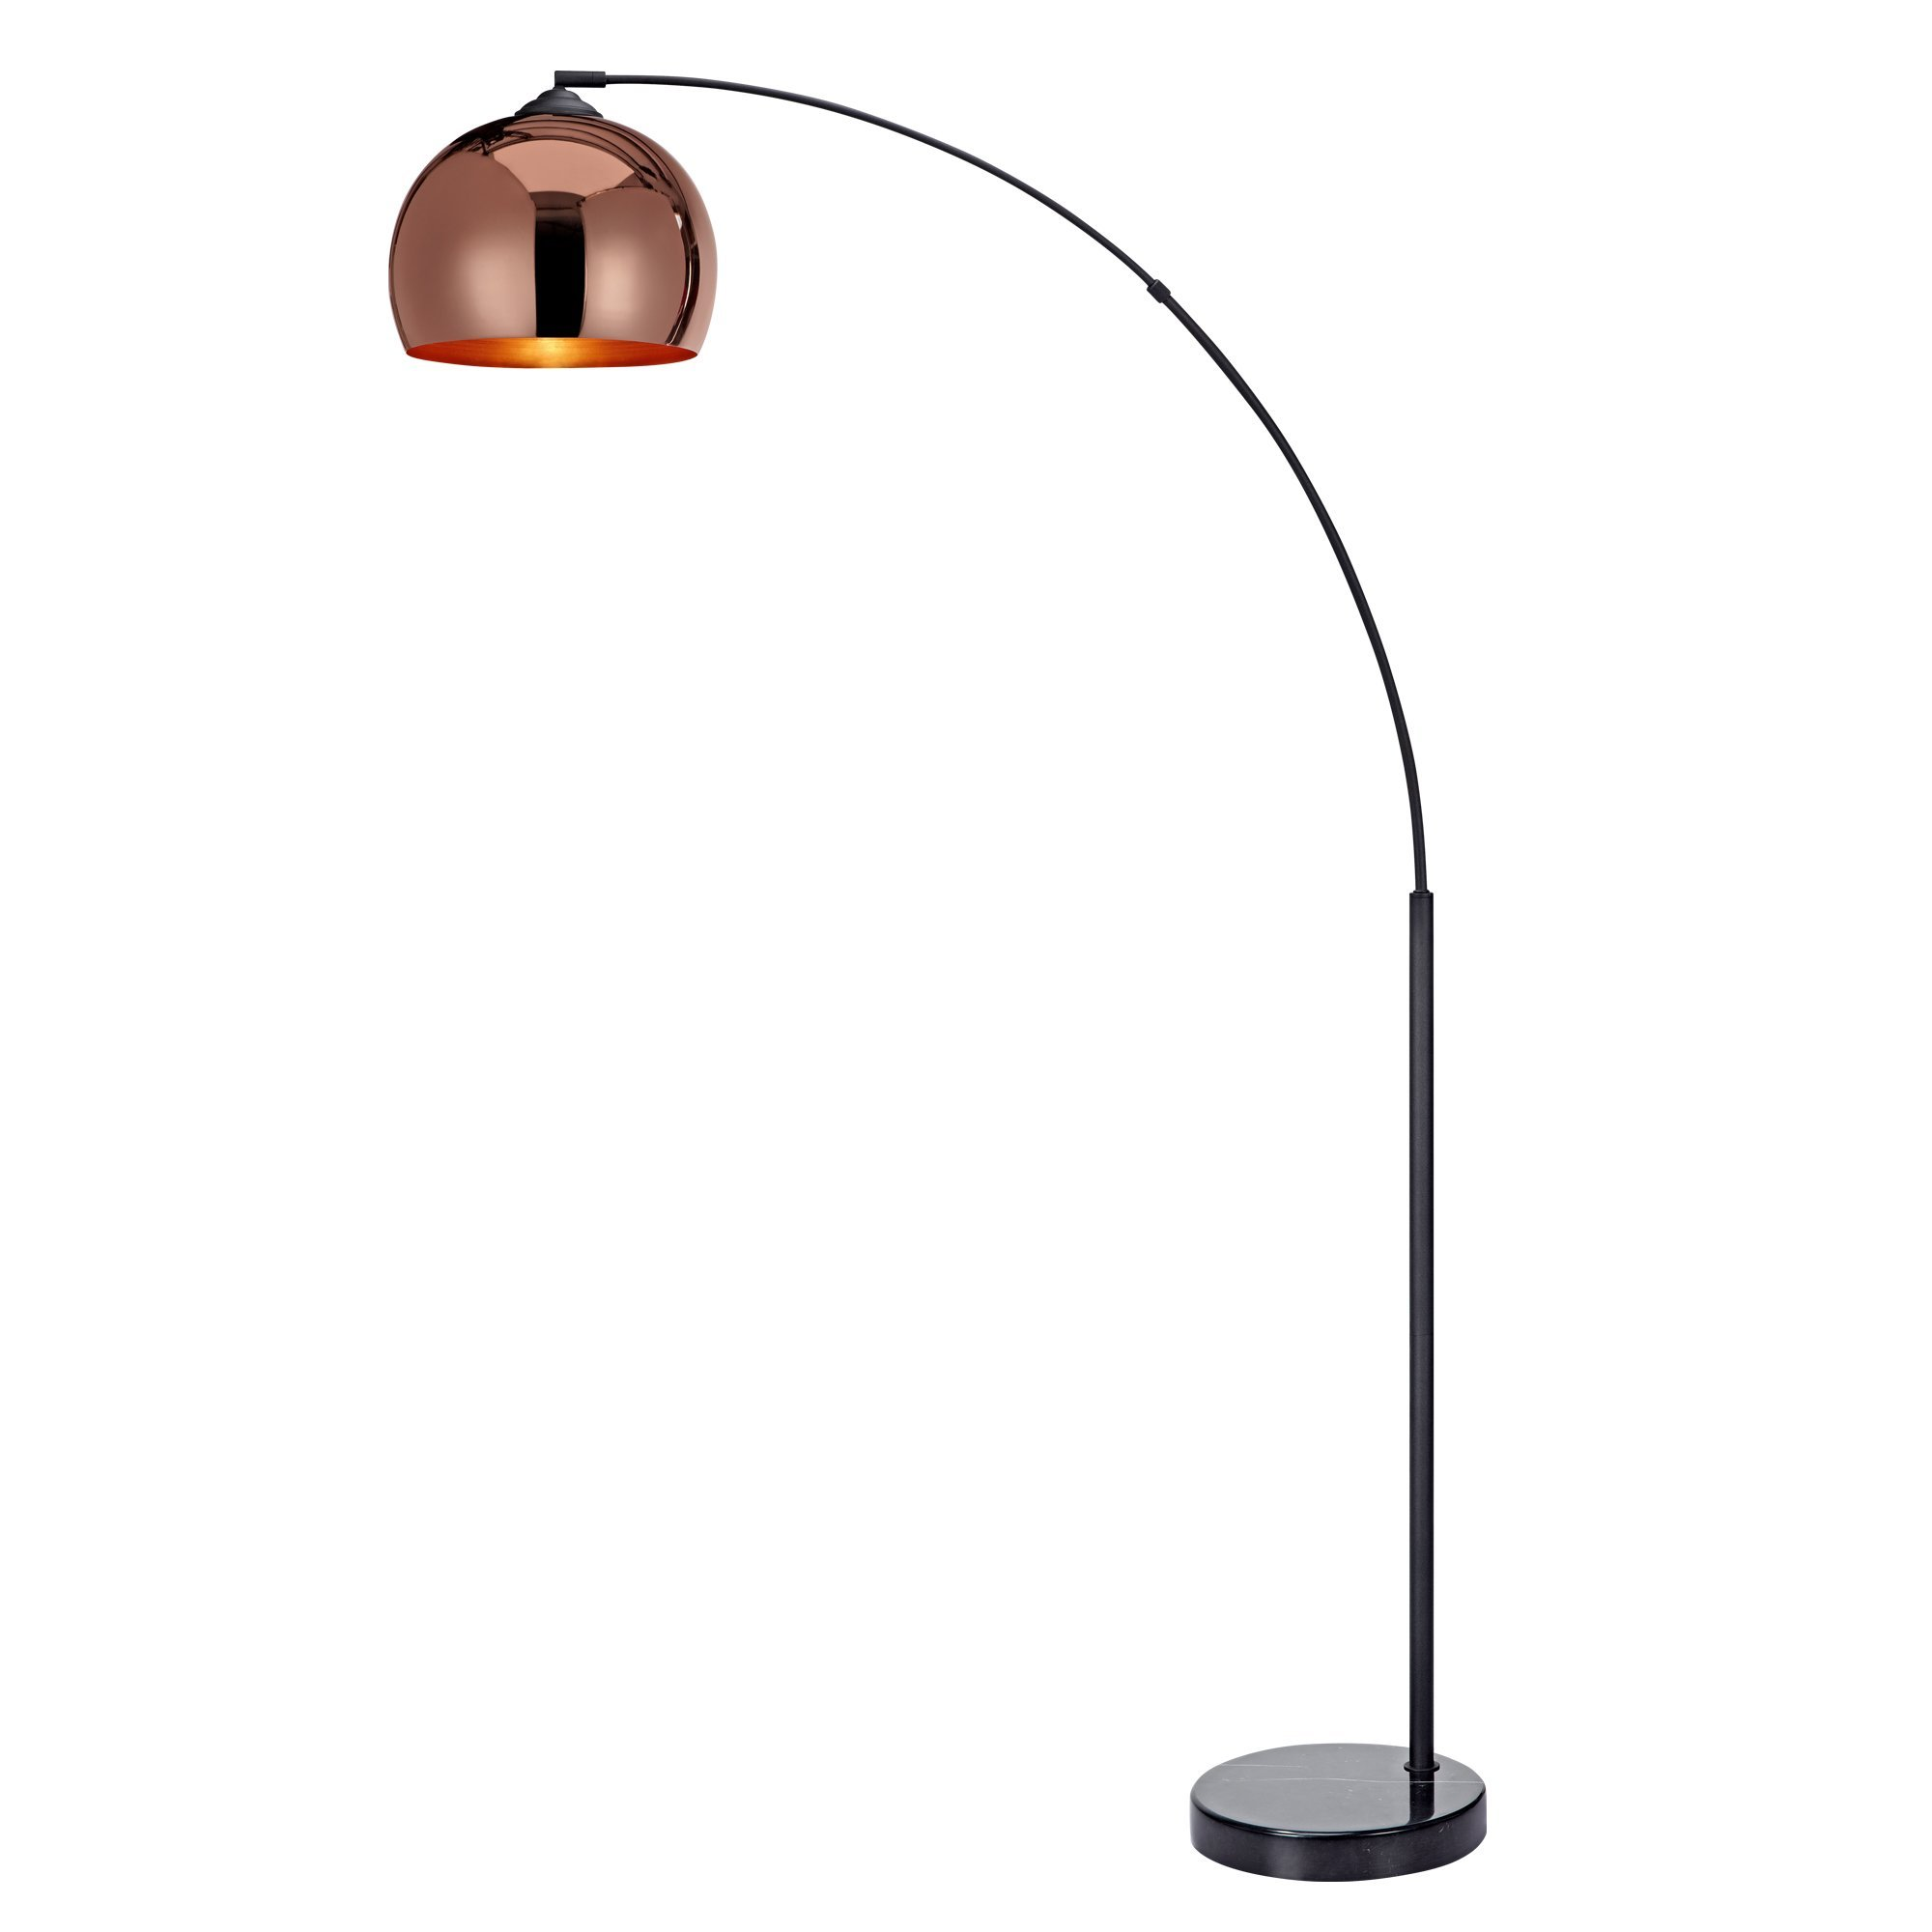 66.93 Inch Modern & Contemporary Metallic Arched Reading Floor Lamp with Dome Shade & Marble Base - Copper Finish